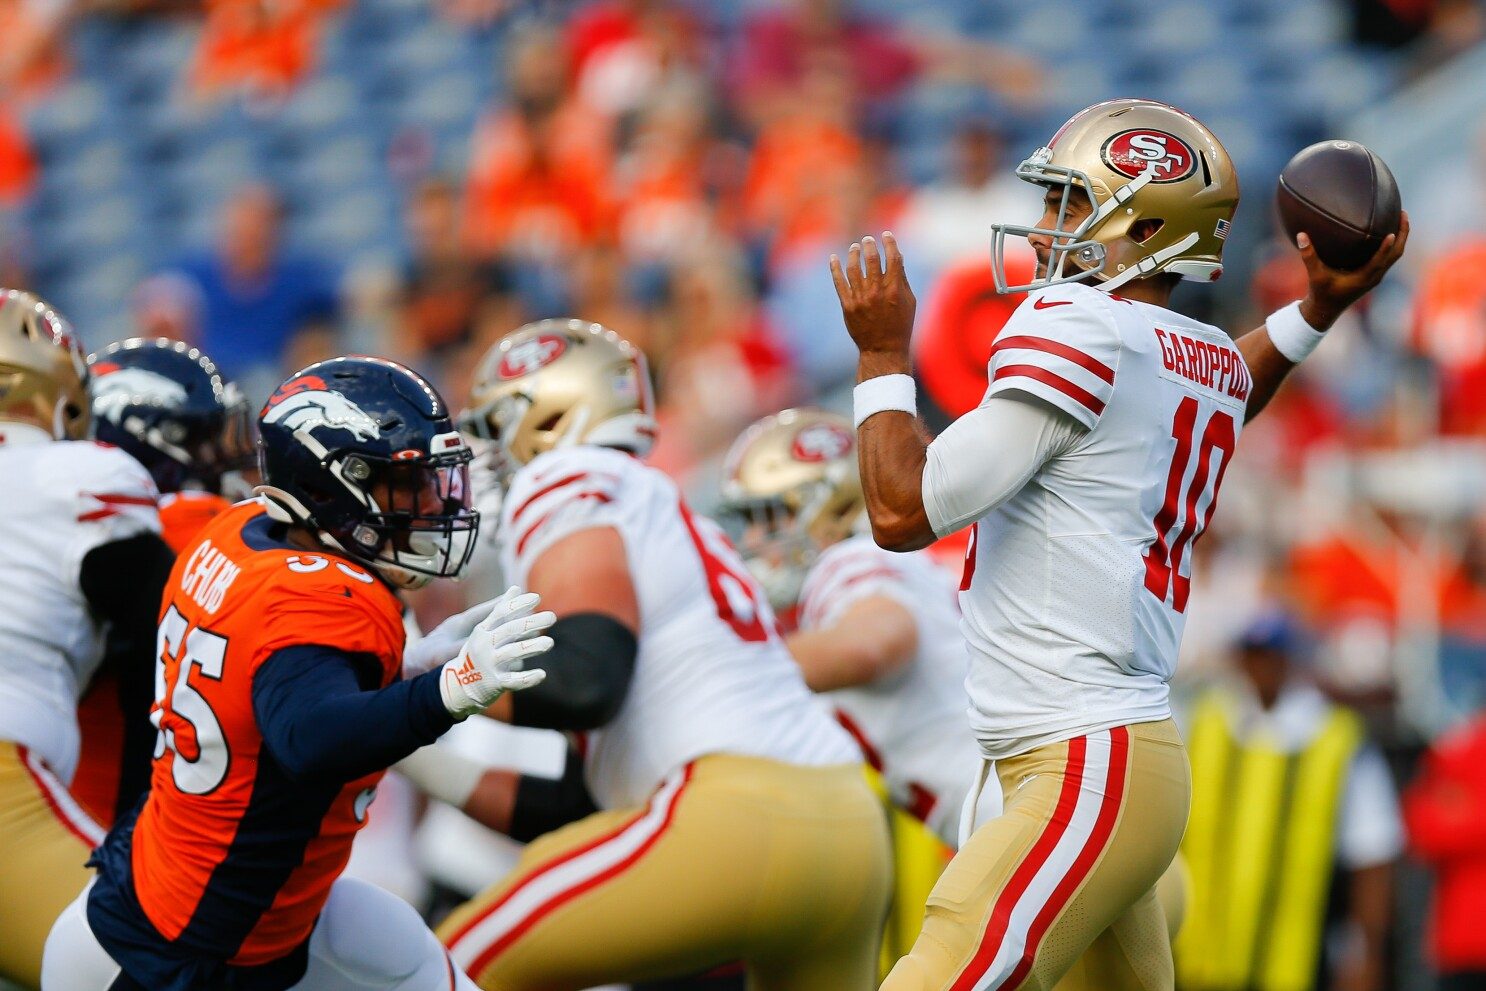 Jimmy Garoppolo has 0.0 passer rating in return from ACL injury